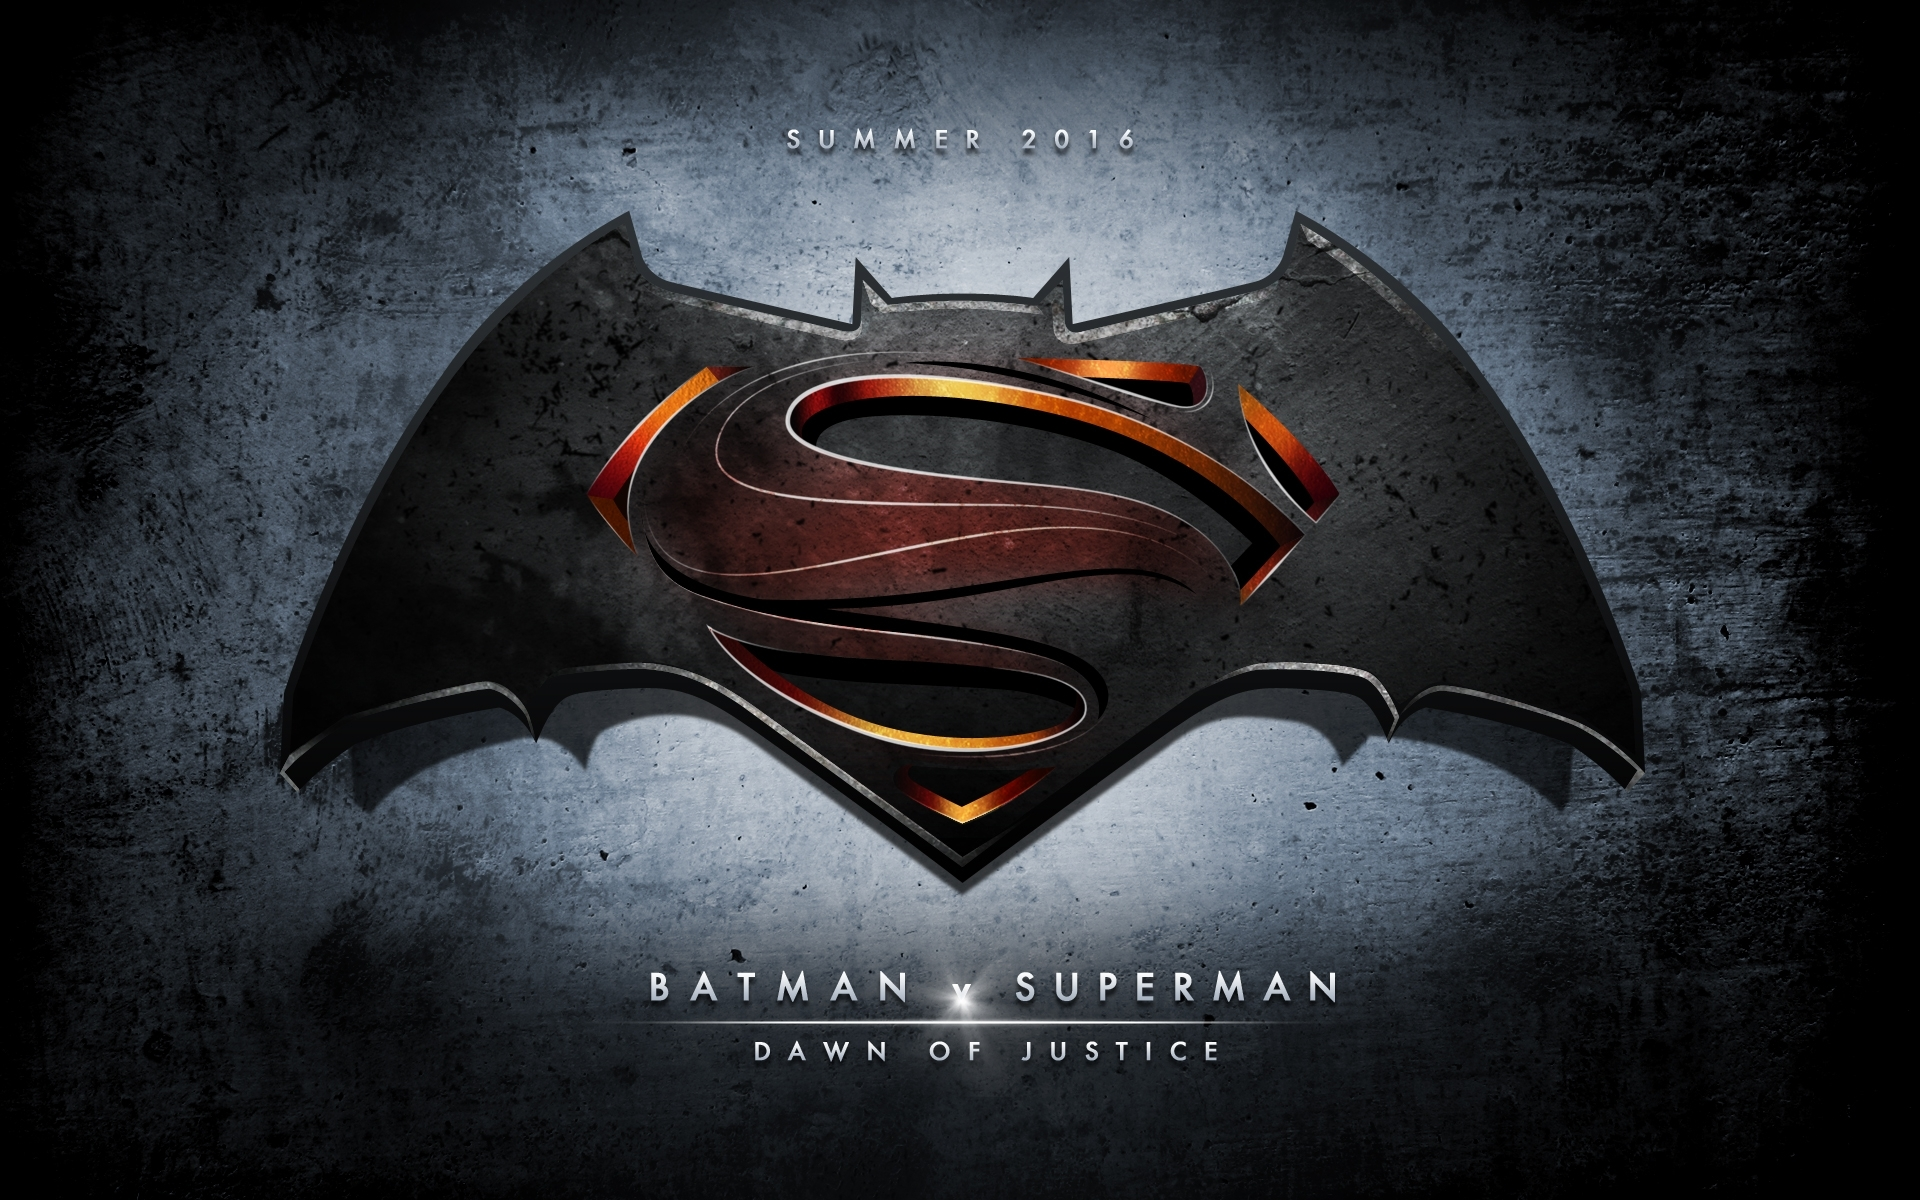 batman vs superman: the good, the bad, and the ugly (with amy salazar)